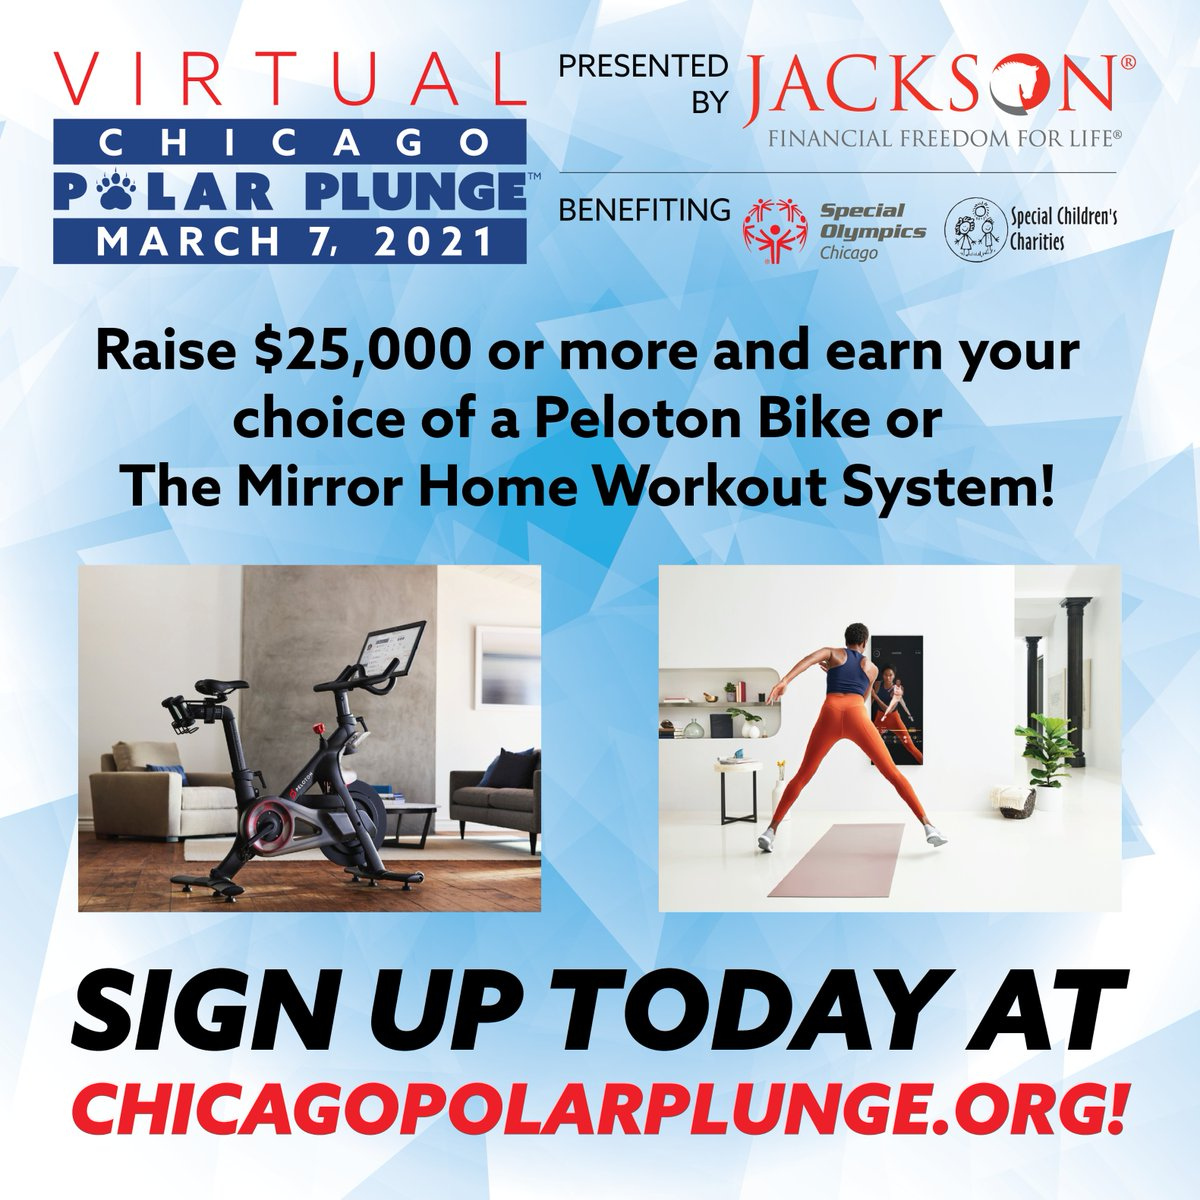 BIG incentive news: Raise $25,000 or more and earn your choice of a Peloton Bike or The Mirror Home Workout System! Register for the Virtual Chicago Polar Plunge presented by Jackson today and get started! https://t.co/JIo84MejNX https://t.co/UEx3TeXrDR